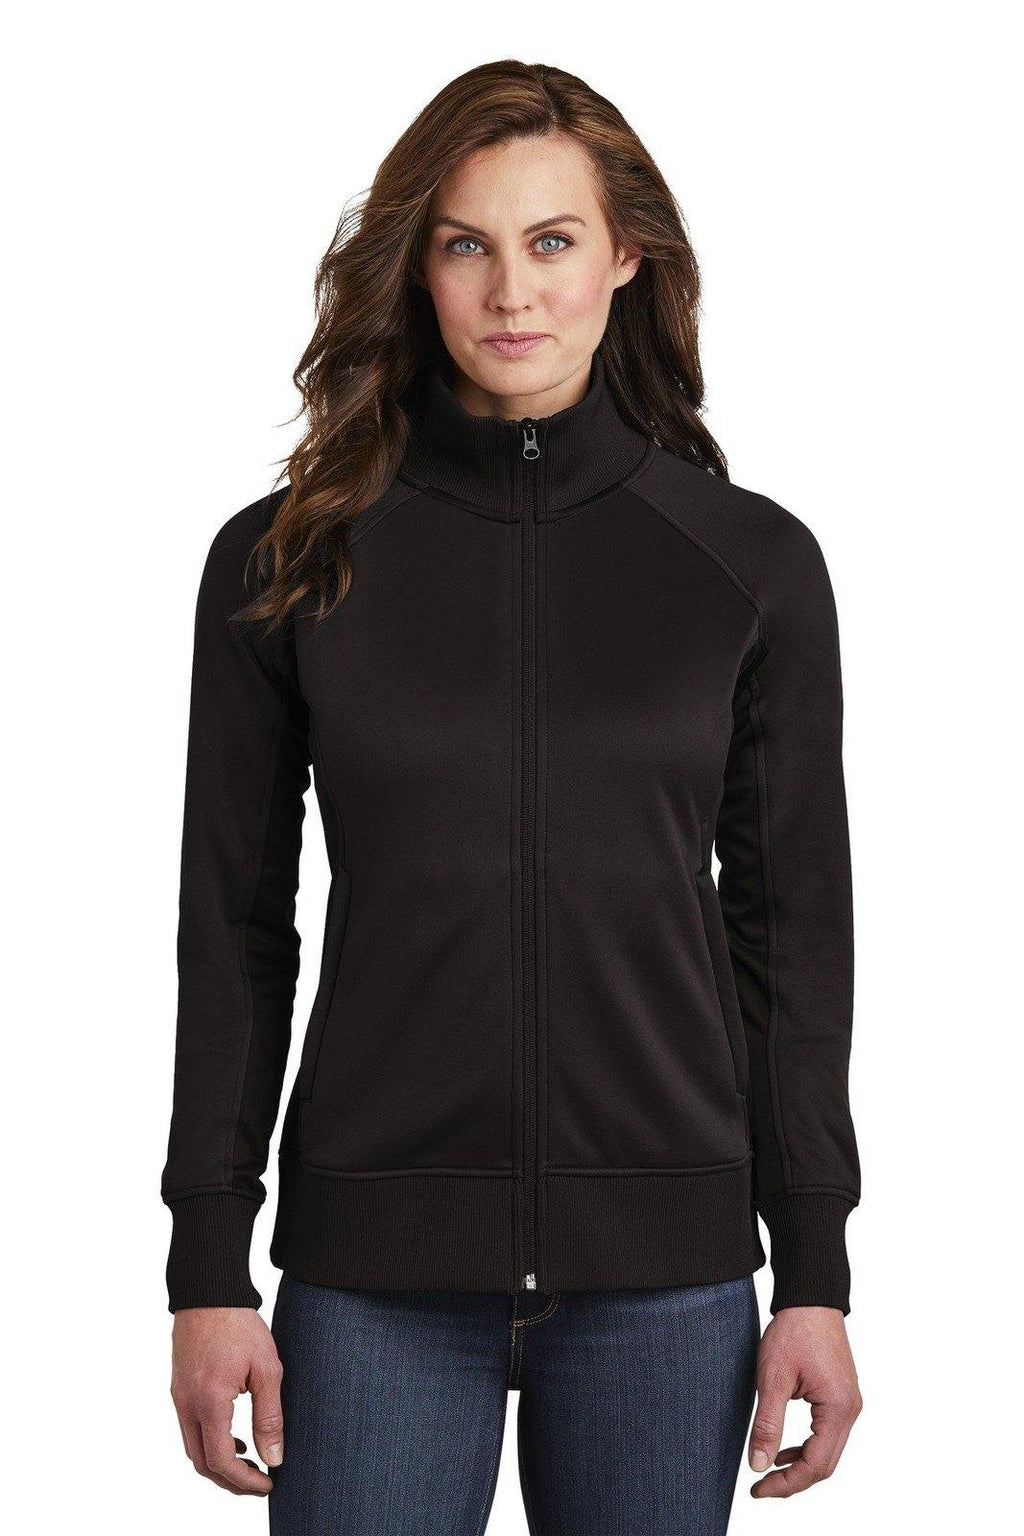 The North Face Ladies Tech Full-Zip Fleece Jacket